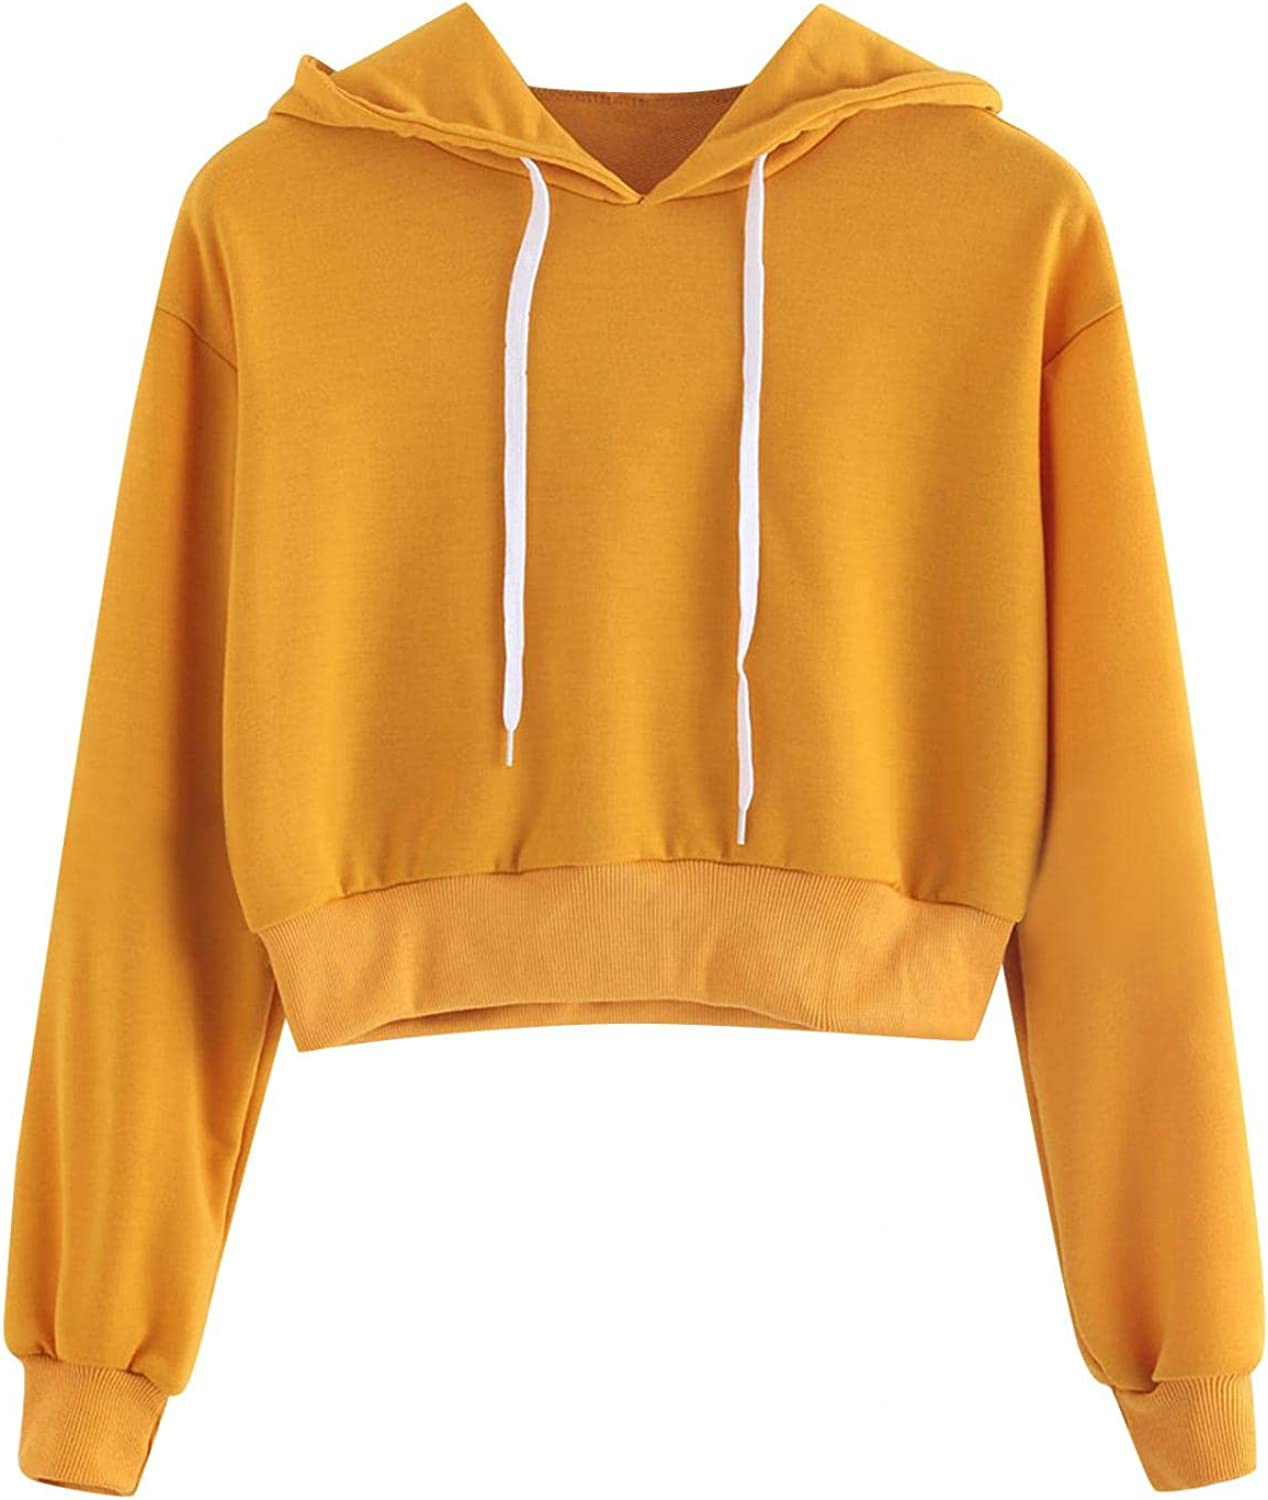 Haheyrte Hoodies for Womens Women Long Sleeve Drawstring Sweatshirt Crop Top Pullover Top Blouse Casual Shirts Sweaters